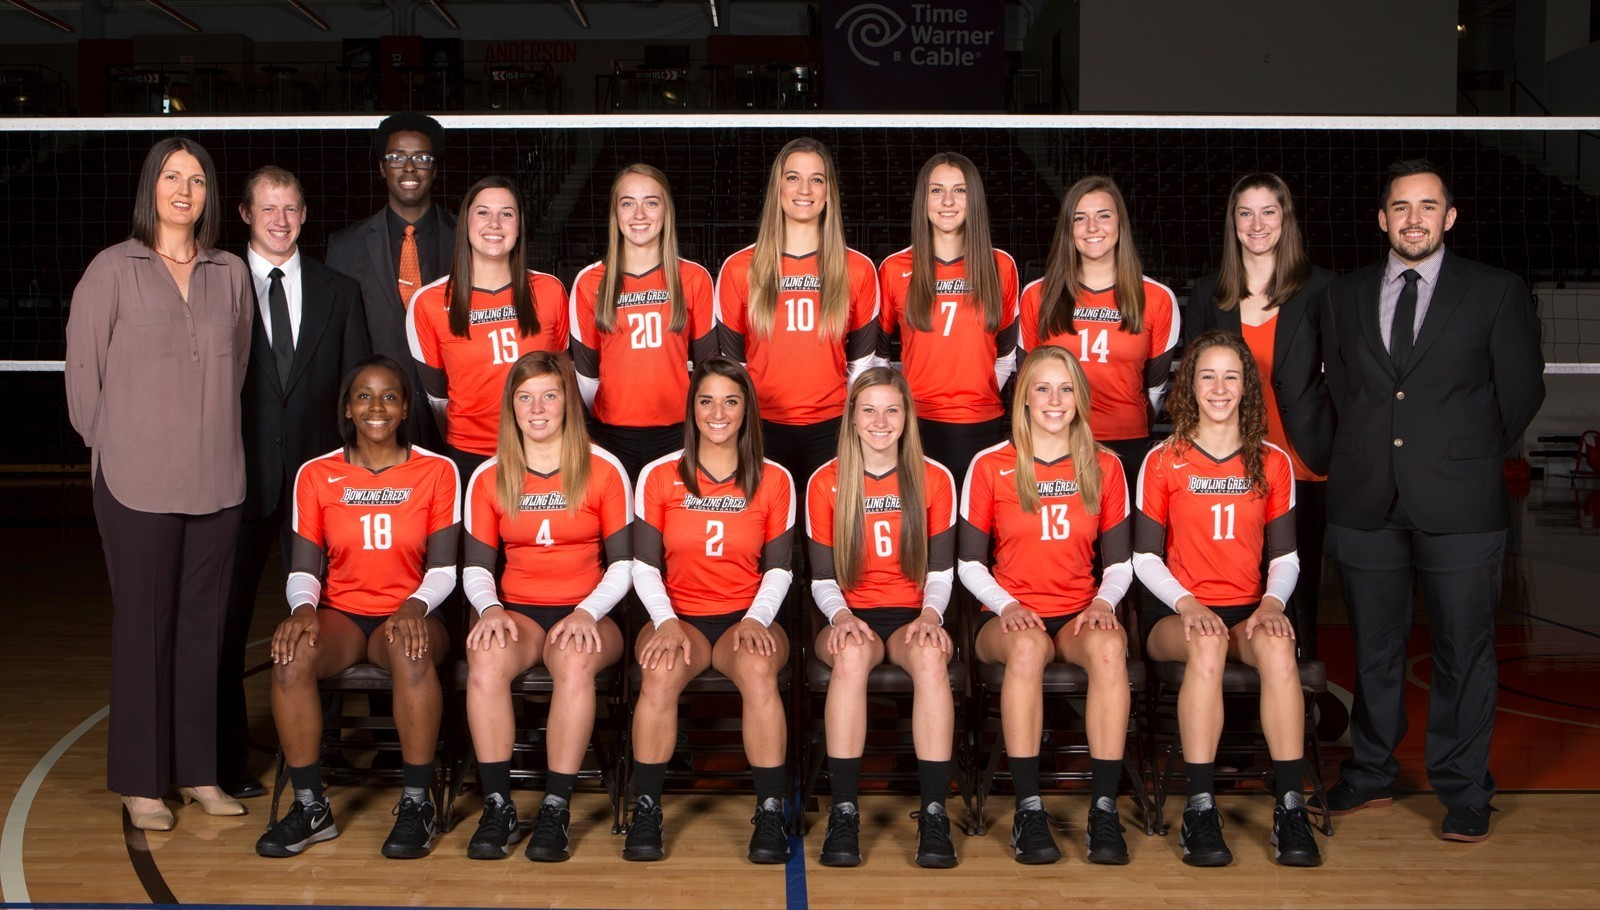 2015 Volleyball Roster Bowling Green State University Athletics